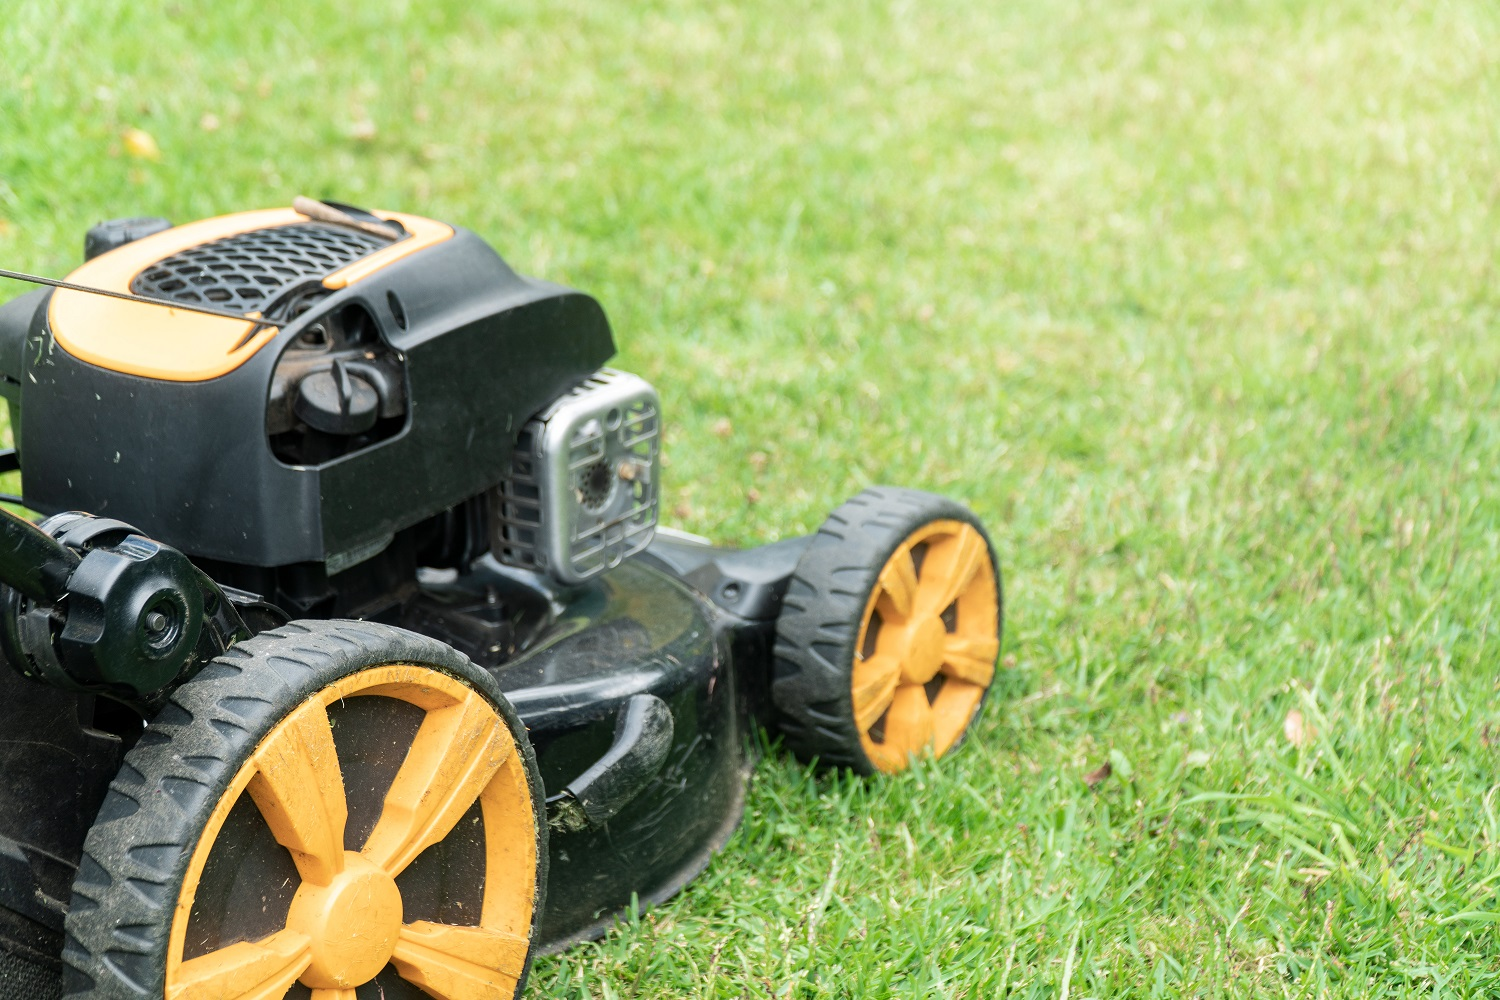 Lawn mower on green grass with copy space for text. Garden work concept background